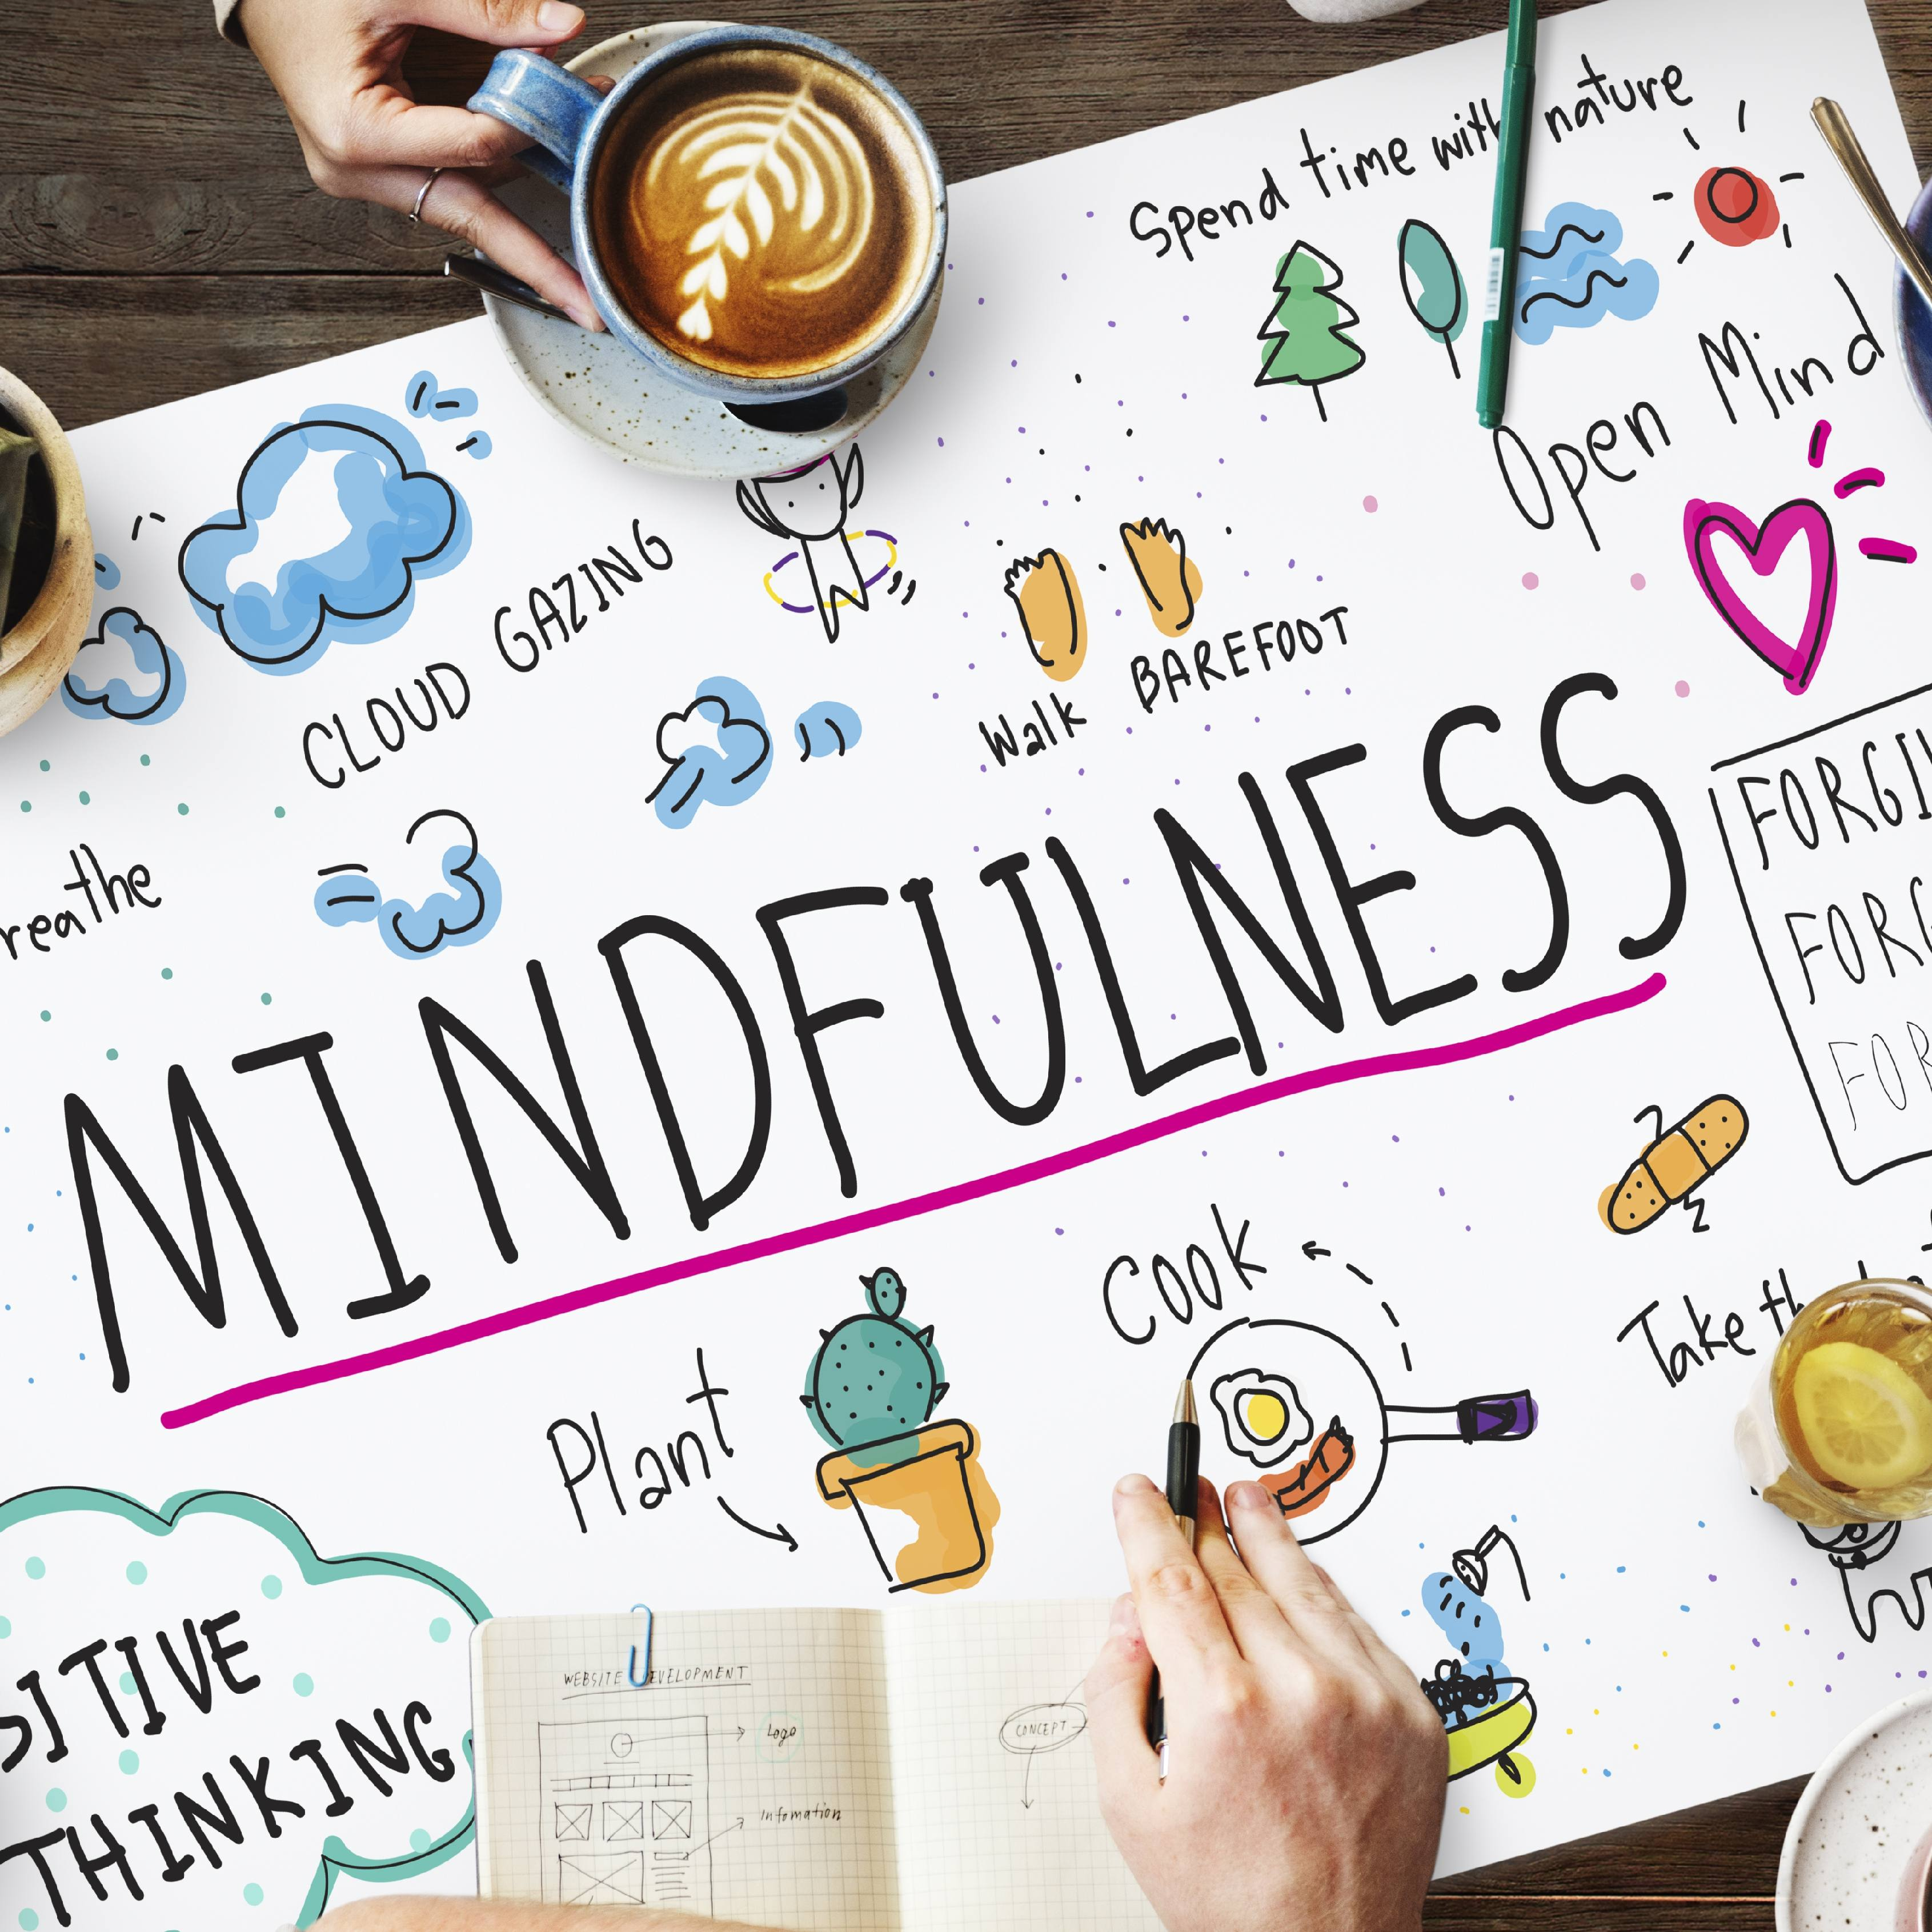 a poster board with a lot of hand drawn pictures and writing directions about mindfulness, positive thinking, relaxing, breathing